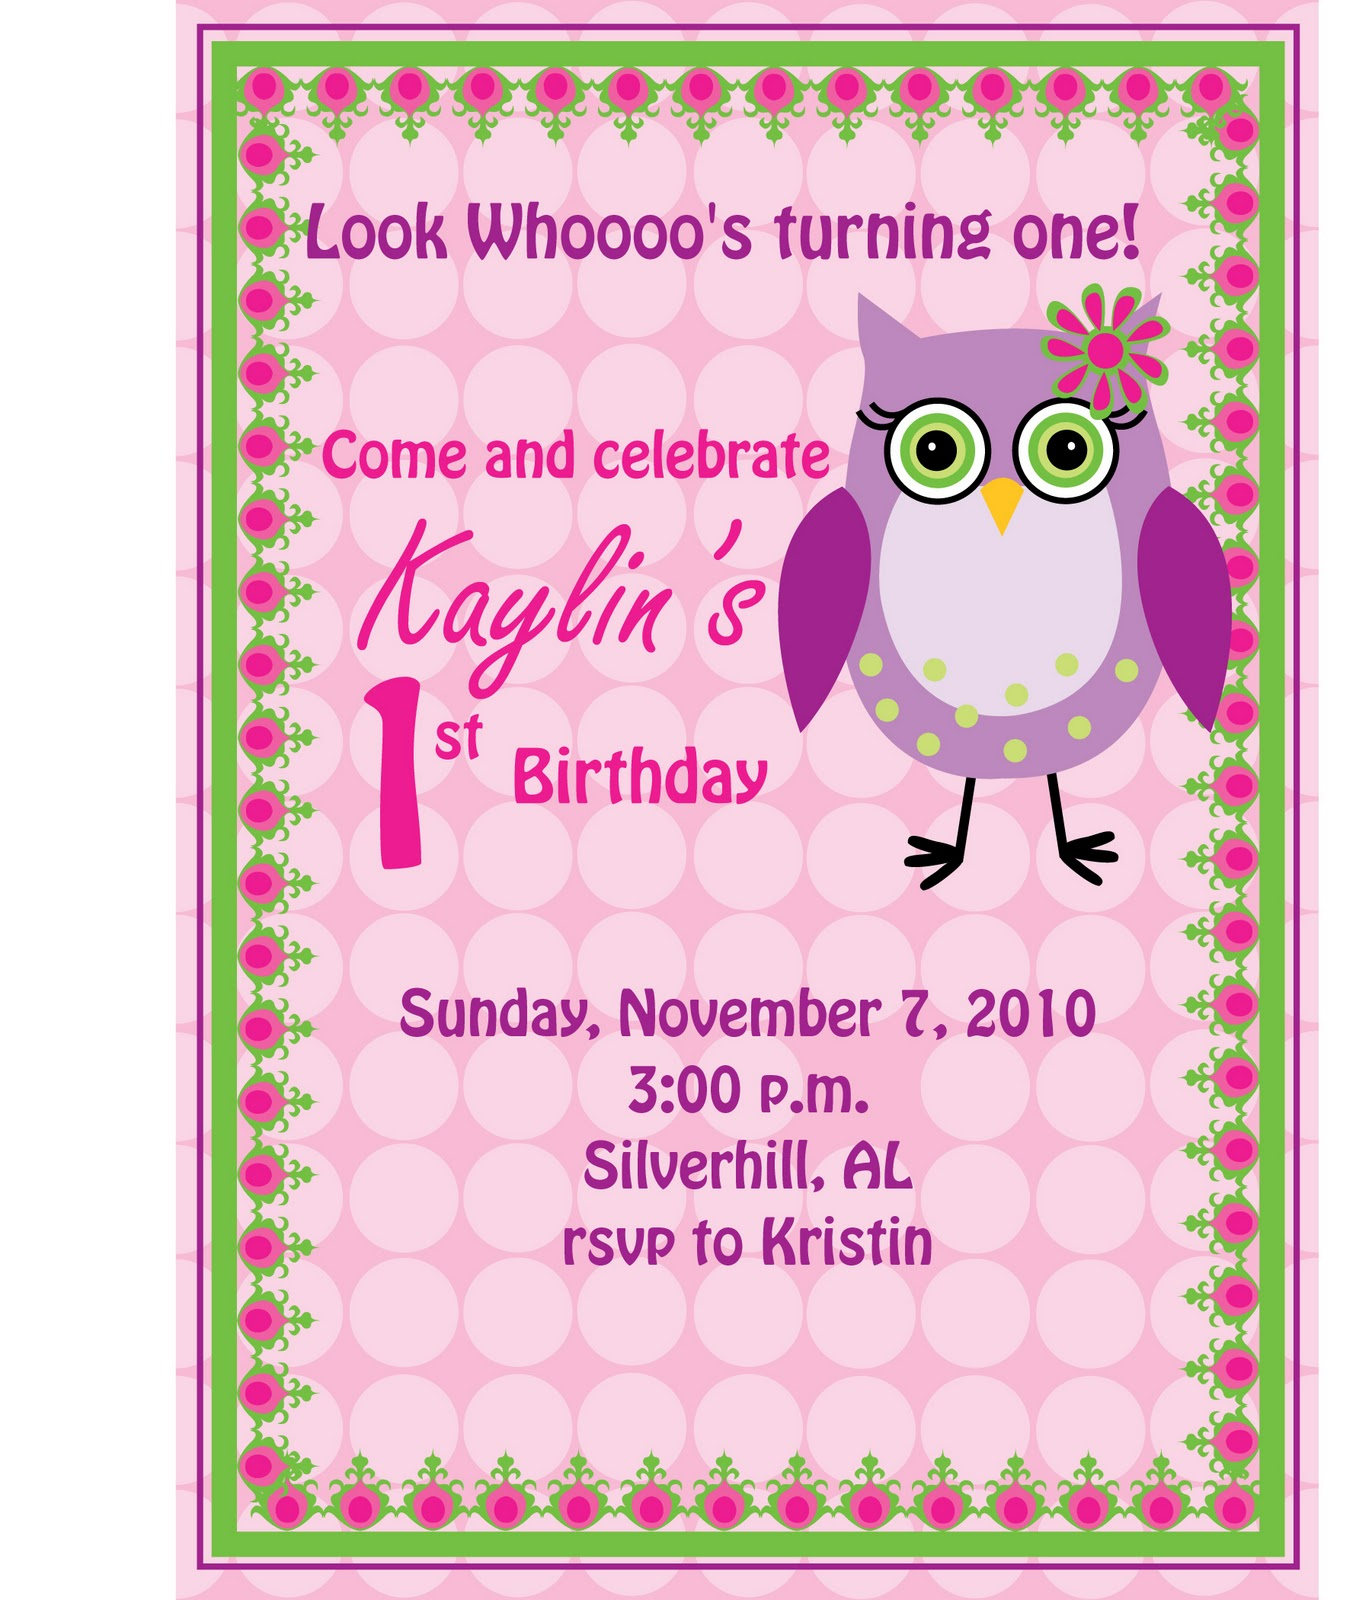 Bubbles Under the Moon Birthday owl invitations